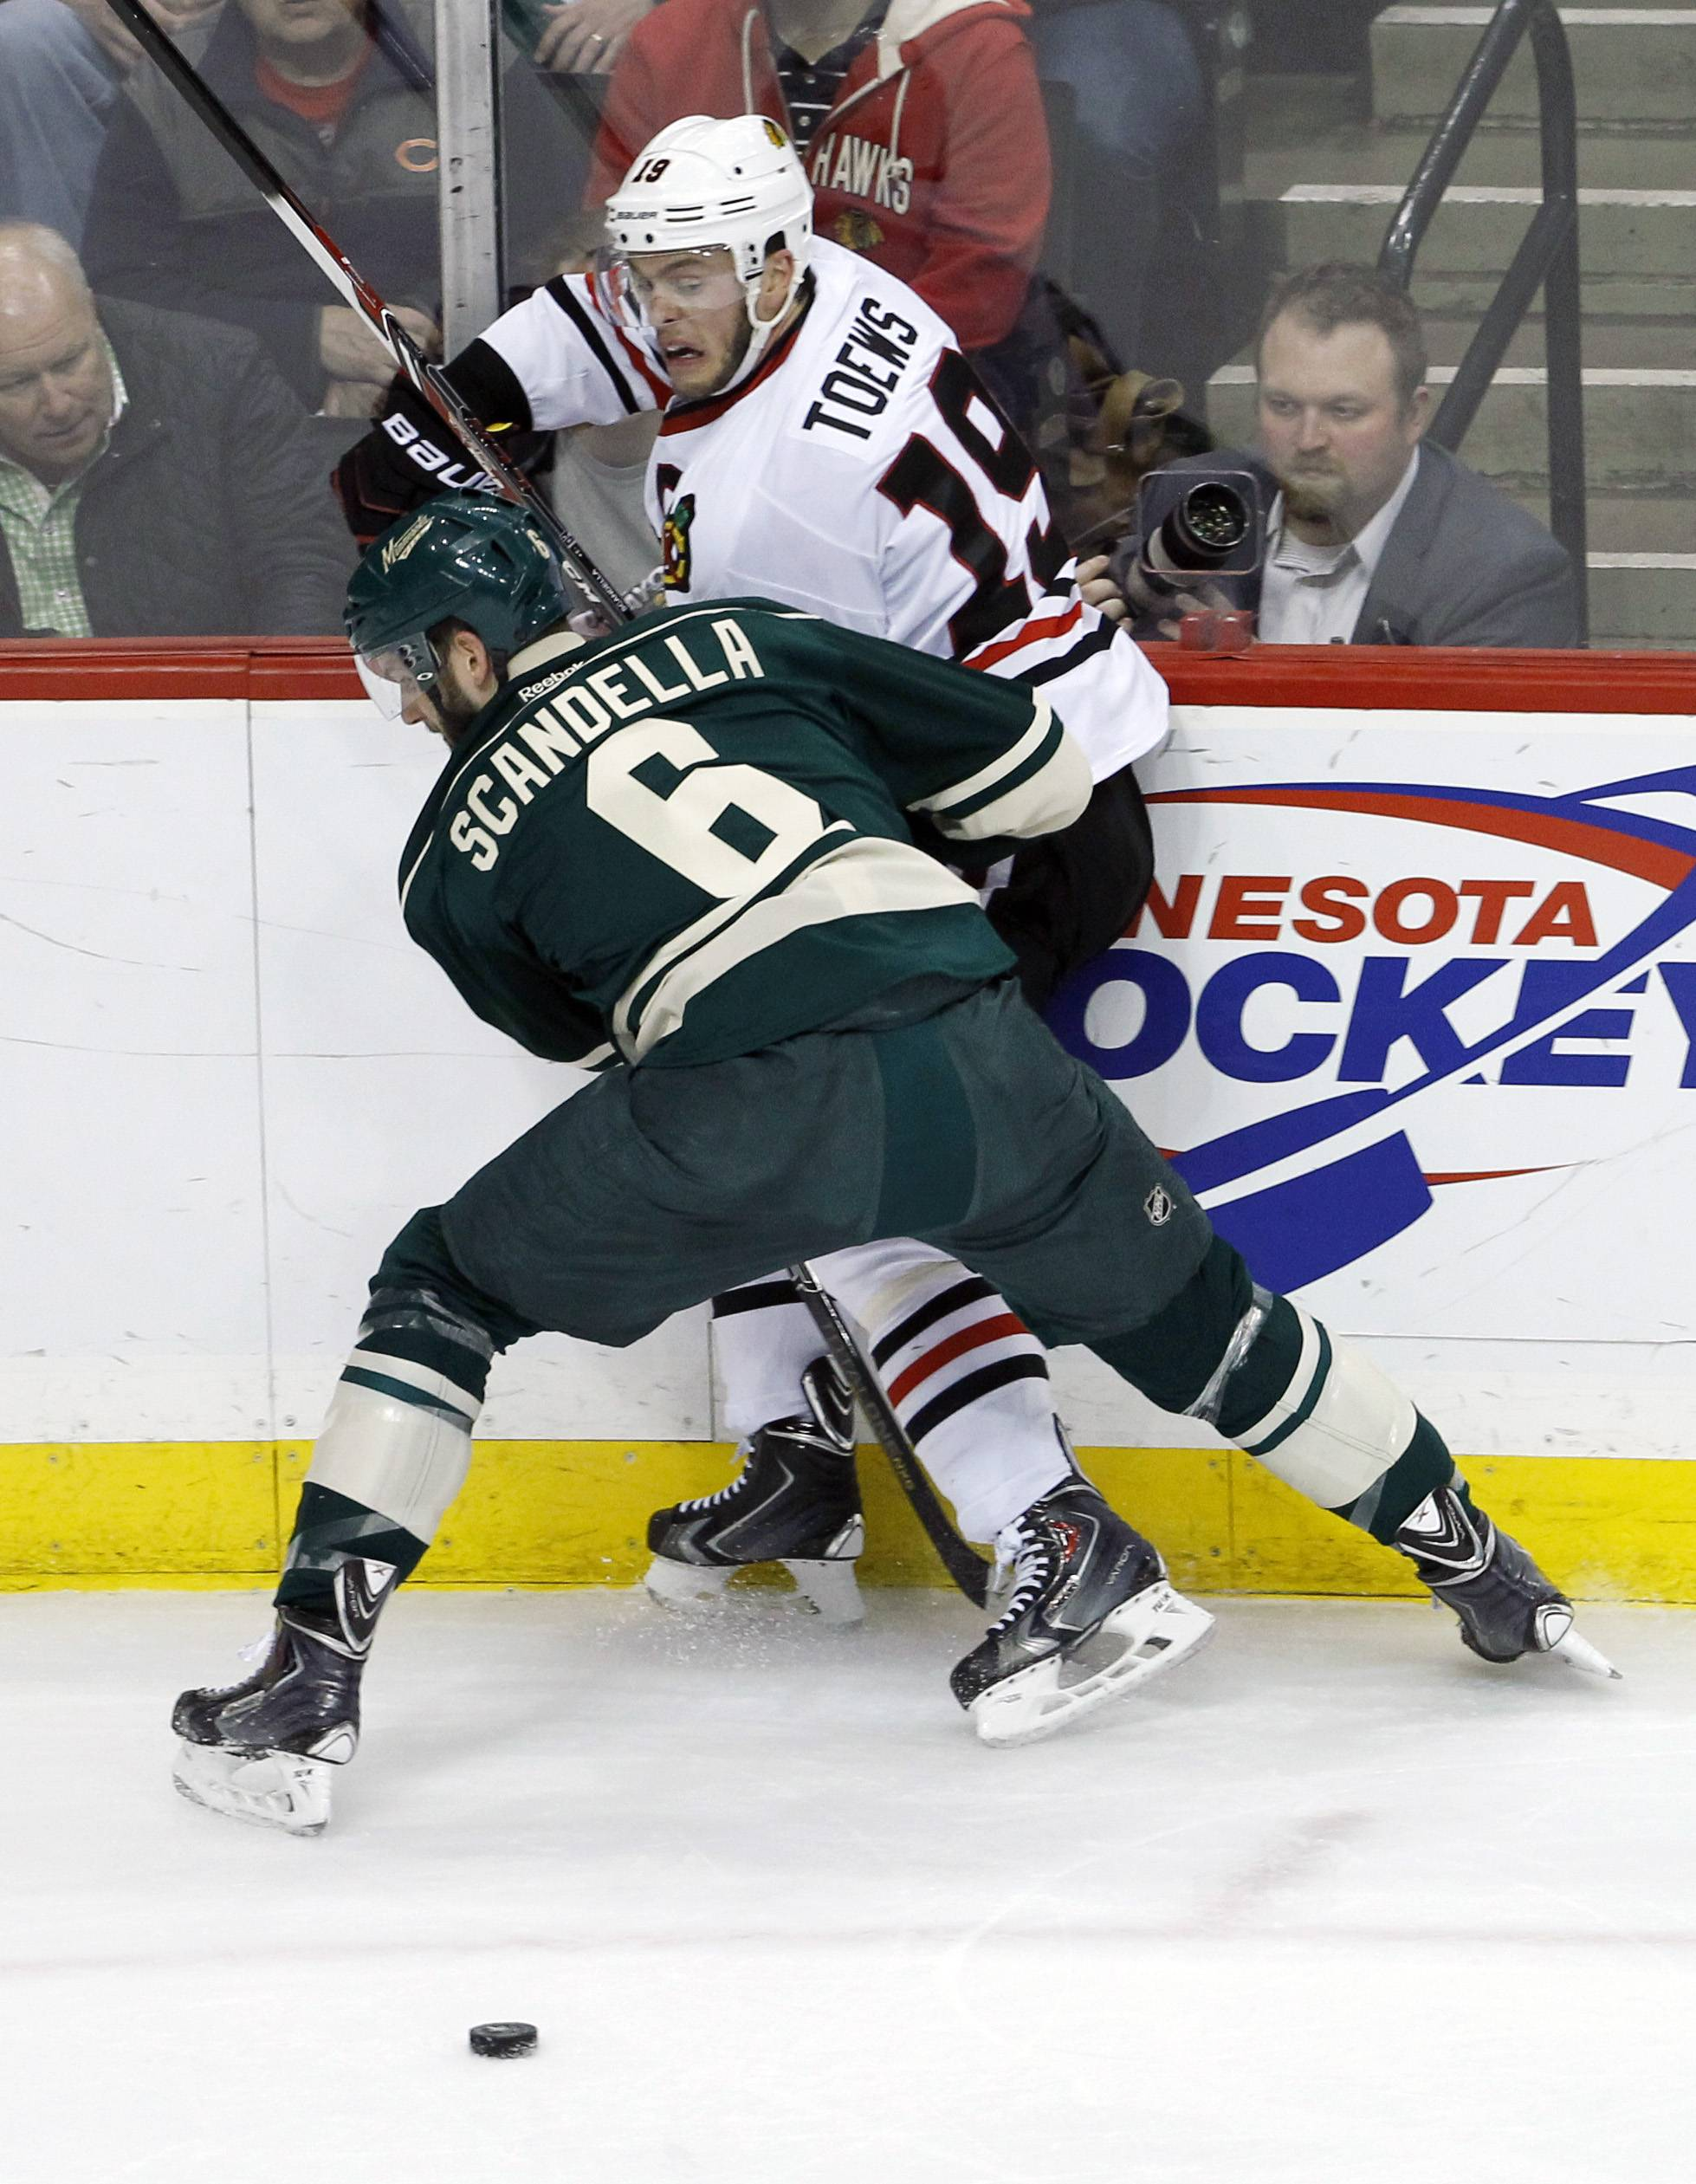 "Minnesota Wild defenseman Marco Scandella (6) pins Chicago Blackhawks center Jonathan Toews (19) against the boards and away from the puck during the first period of Game 3 of an NHL hockey second-round playoff series Tuesday in St. Paul, Minn. Toews said the team just has to put the two-game loss behind them. ""It's playoff hockey -- it's not supposed to be easy,"" Toews said."